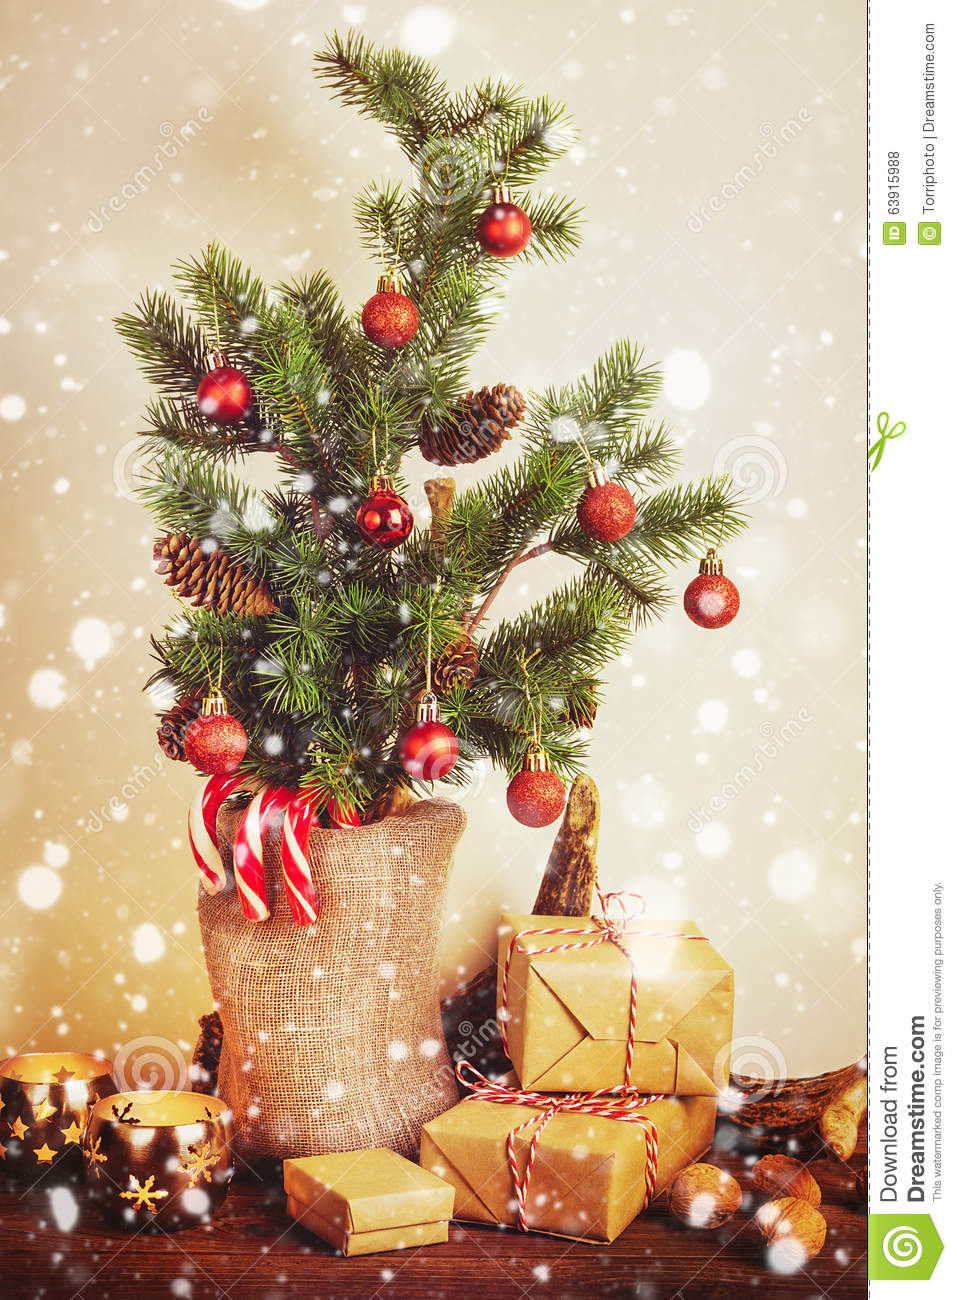 Rustic Christmas Decorations Stock Photo Image Of Merry Decorative 63915988